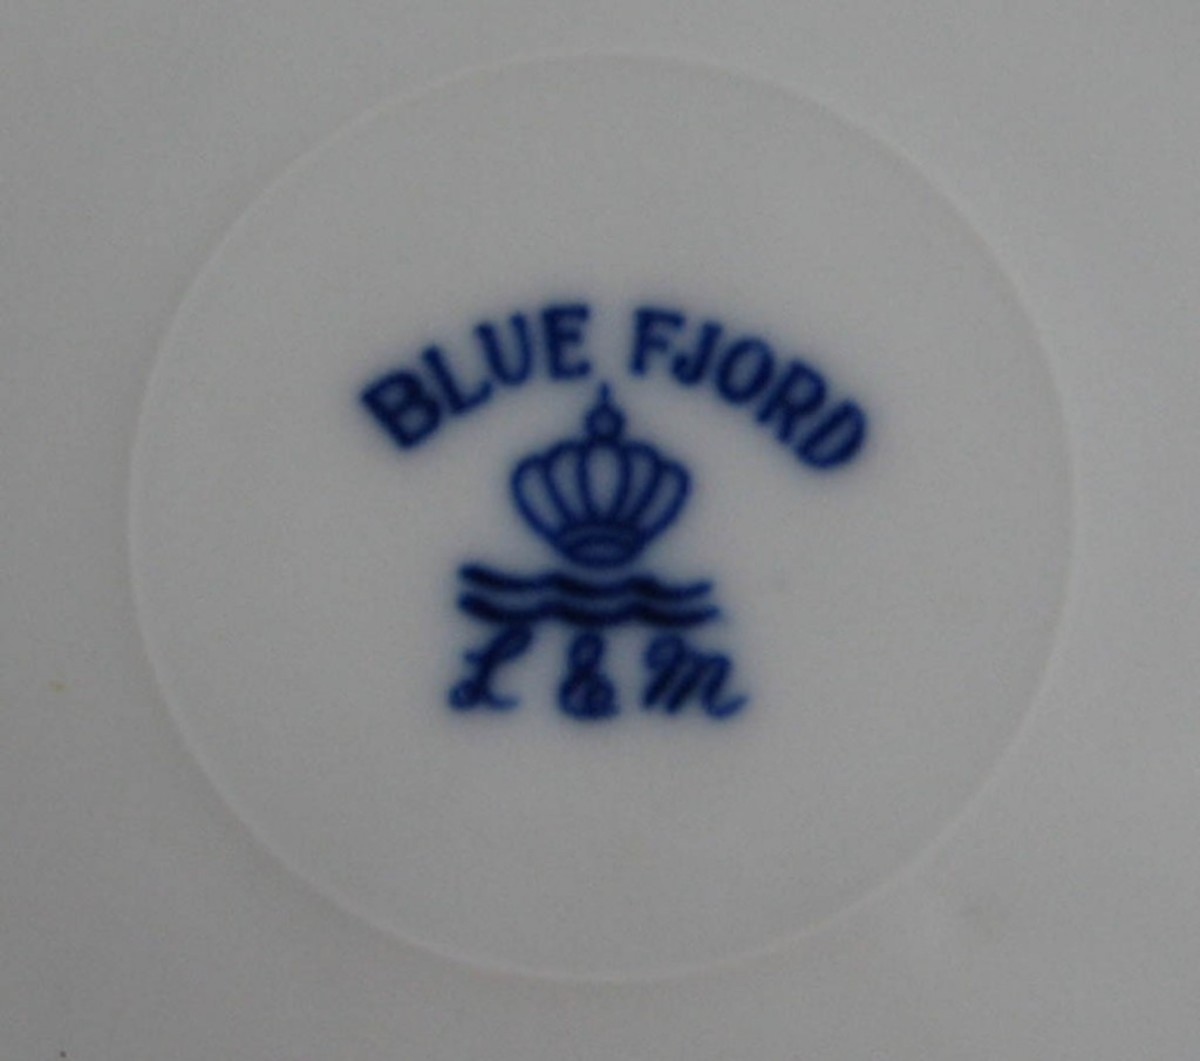 An example of a backstamp.